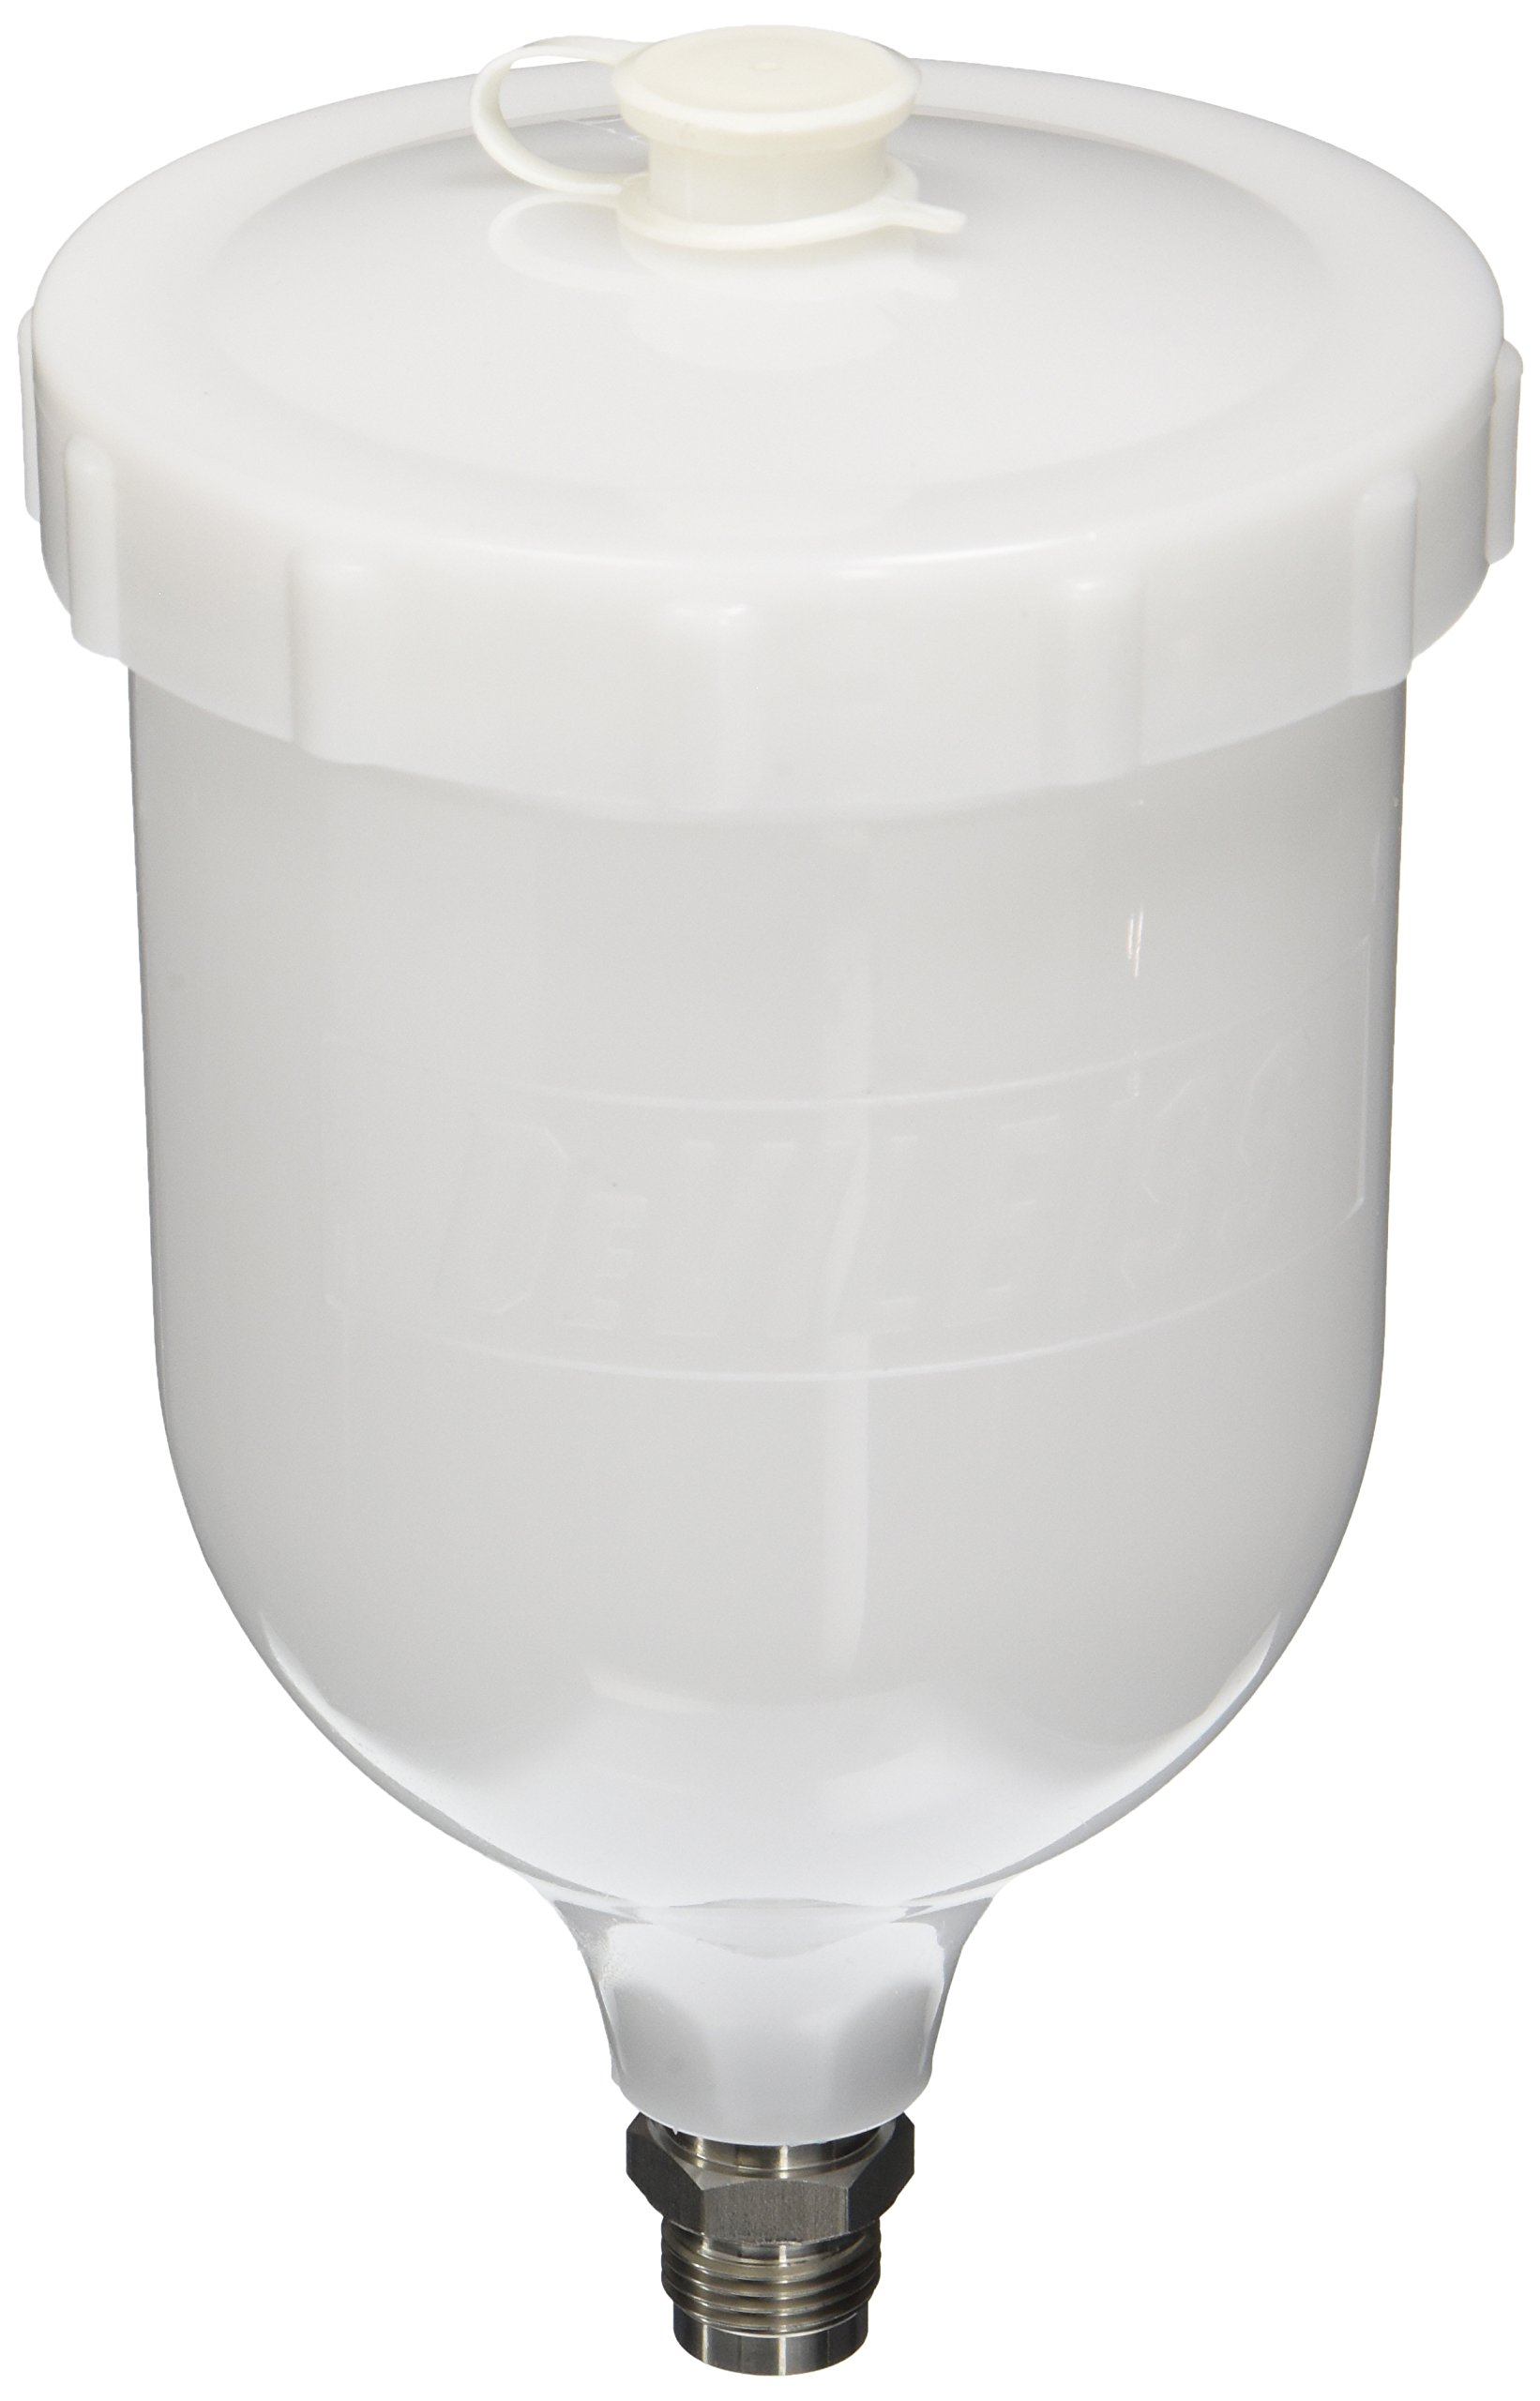 DeVilbiss GFC501 Gravity Feed Cup - 20 oz. Capacity